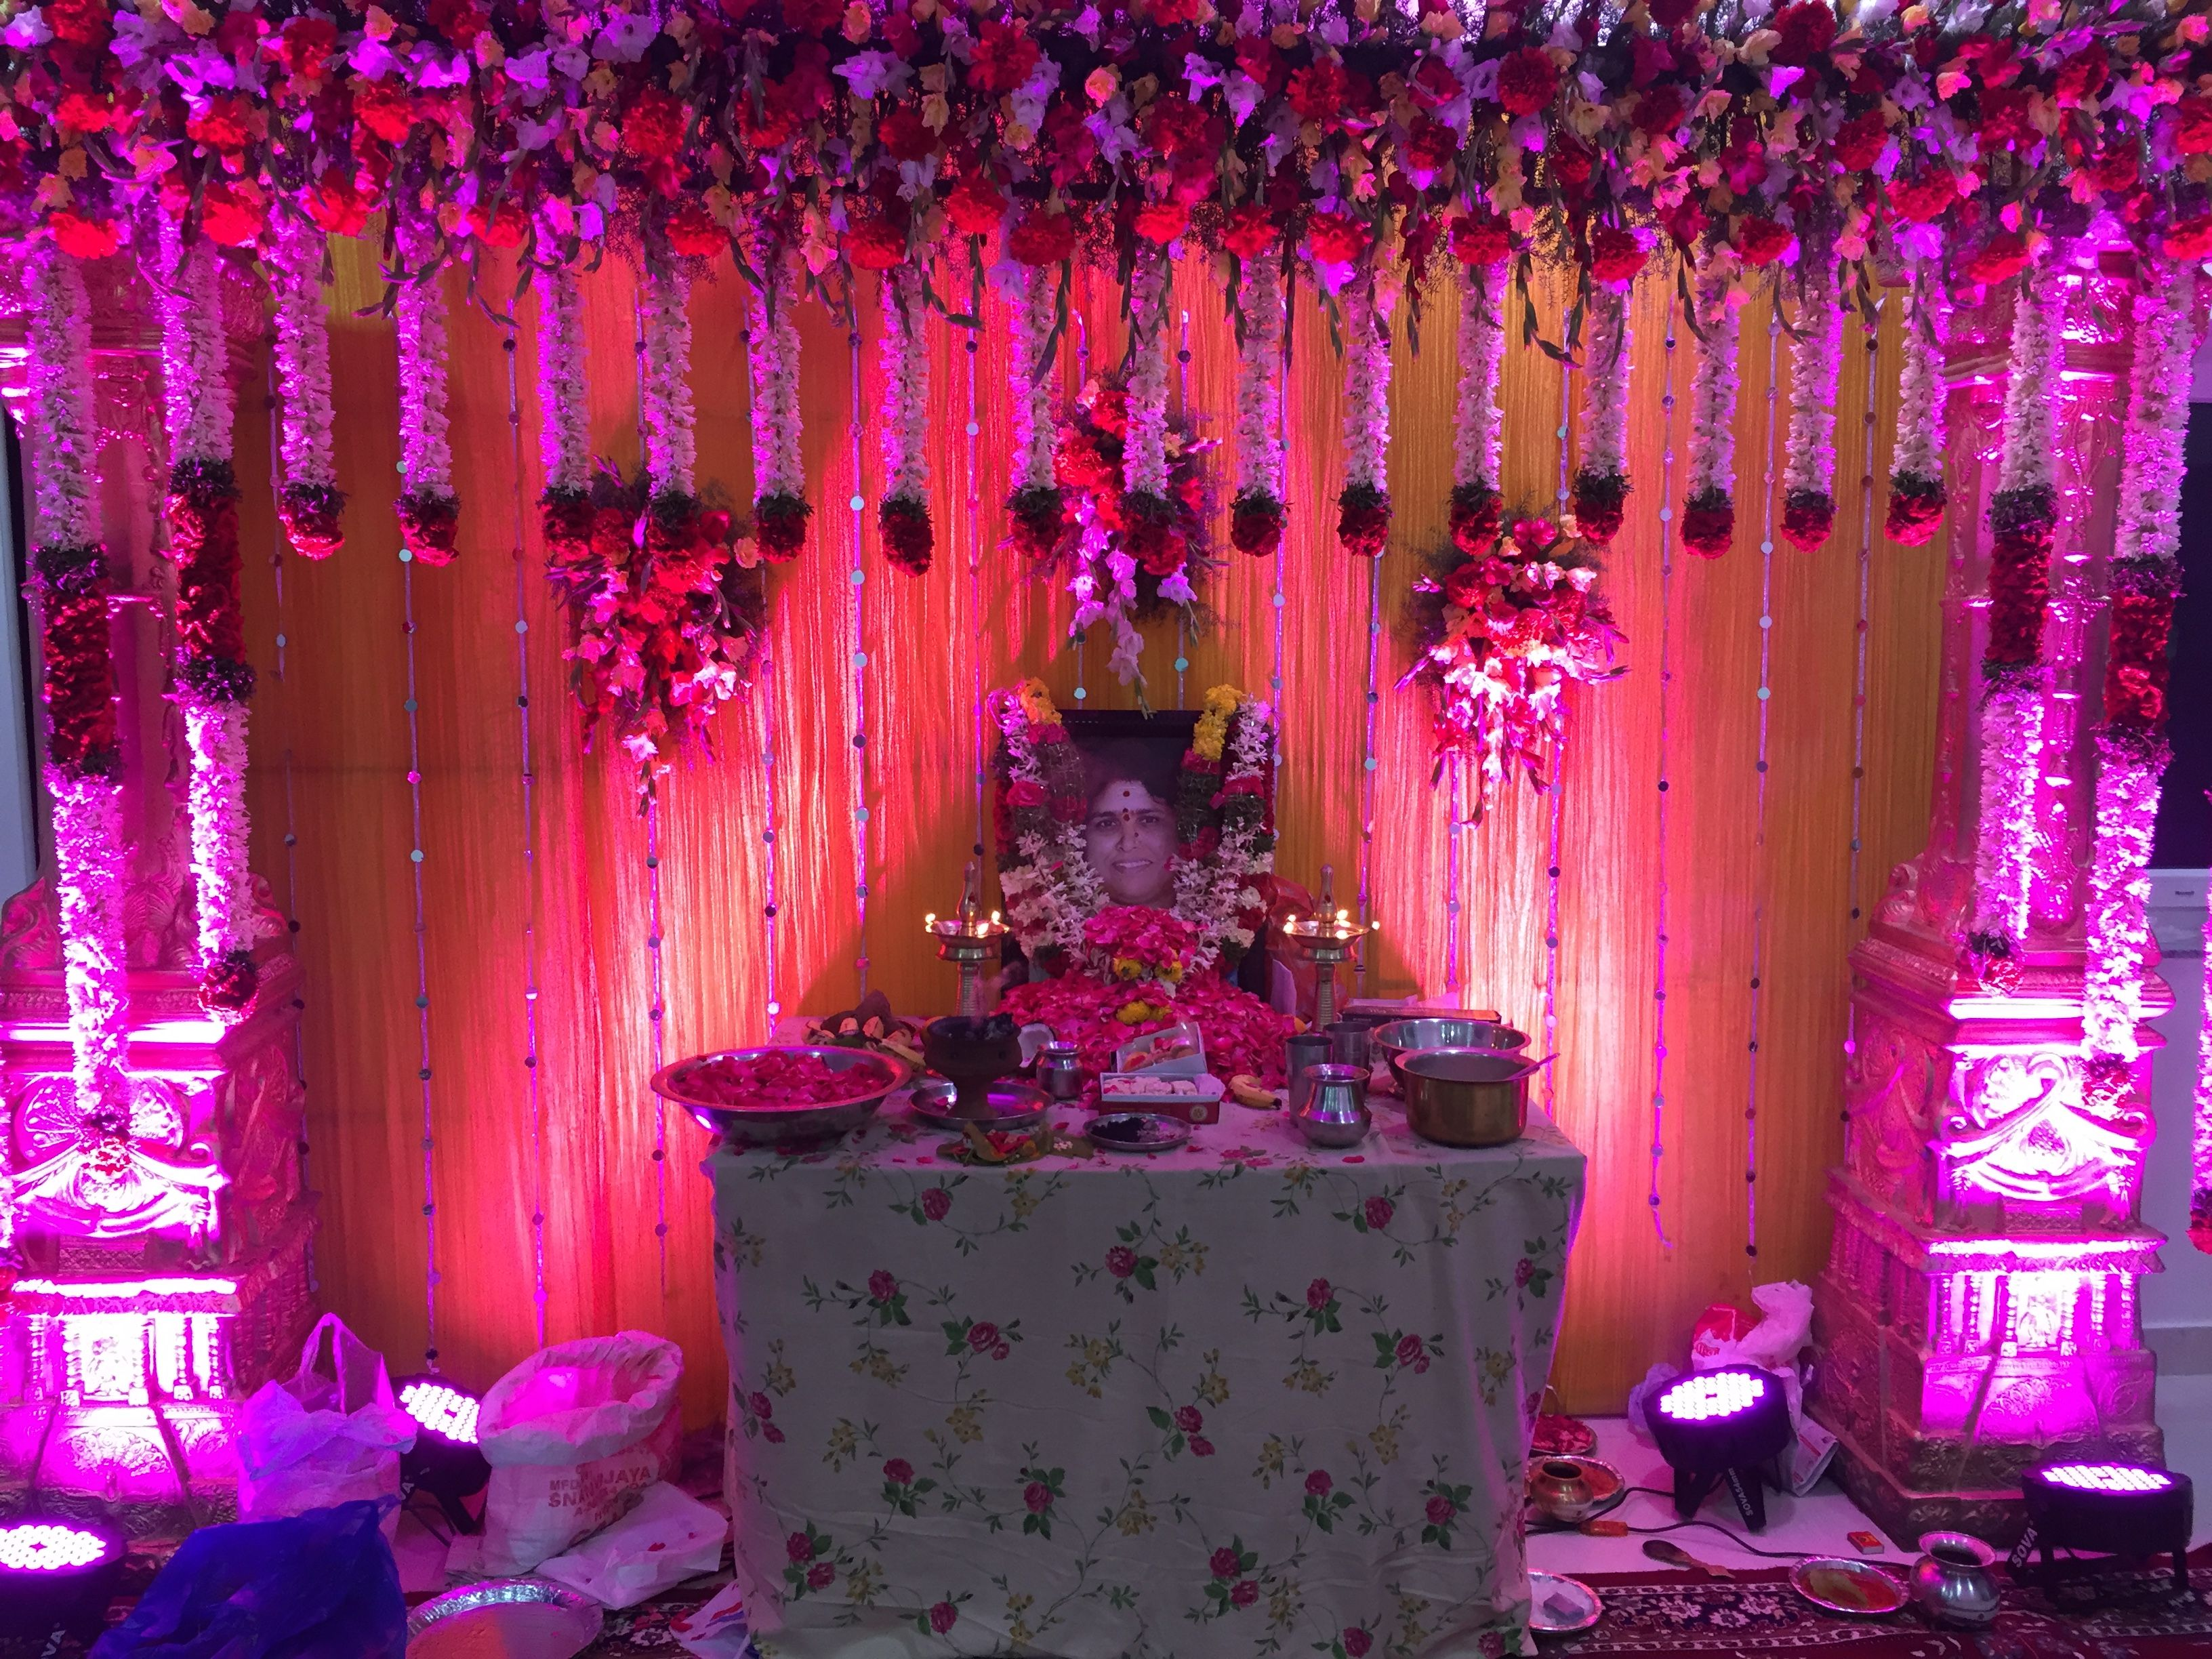 Wedding stage simple decoration images  Pin by Ganesh NANDIKANTI on Wedding decorators  Pinterest  Weddings